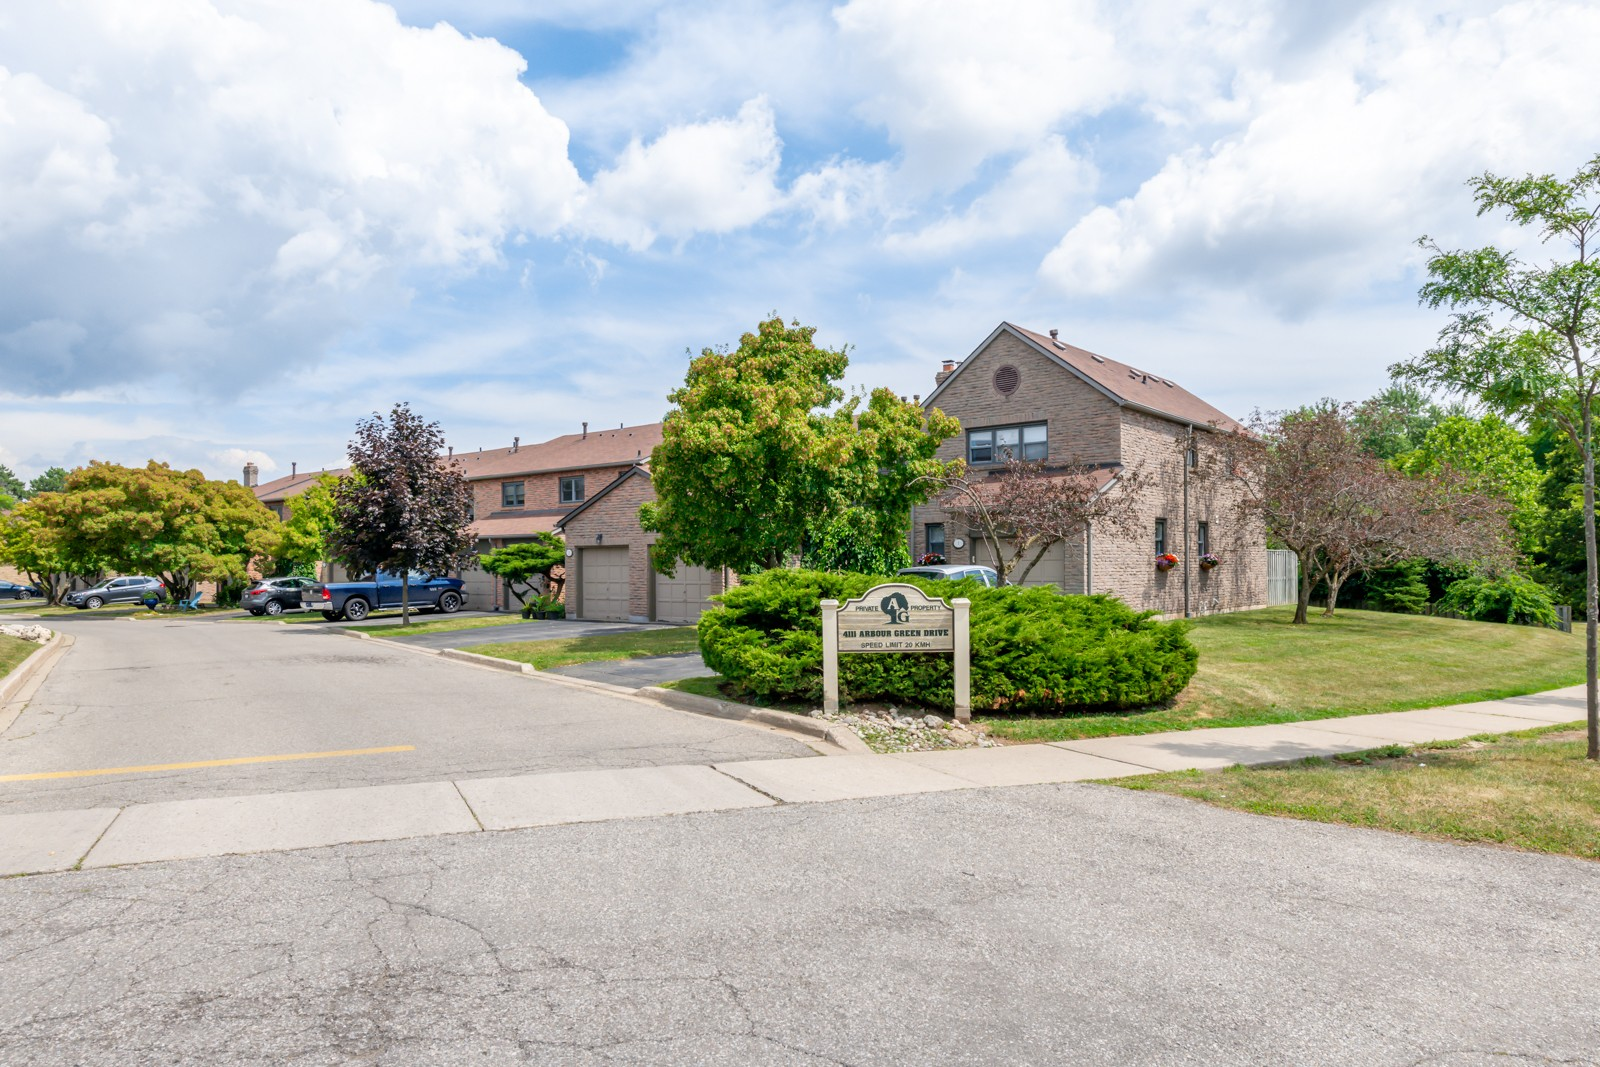 4111 Arbour Green Drive Townhouses at 4111 Arbour Green Dr, Mississauga 0